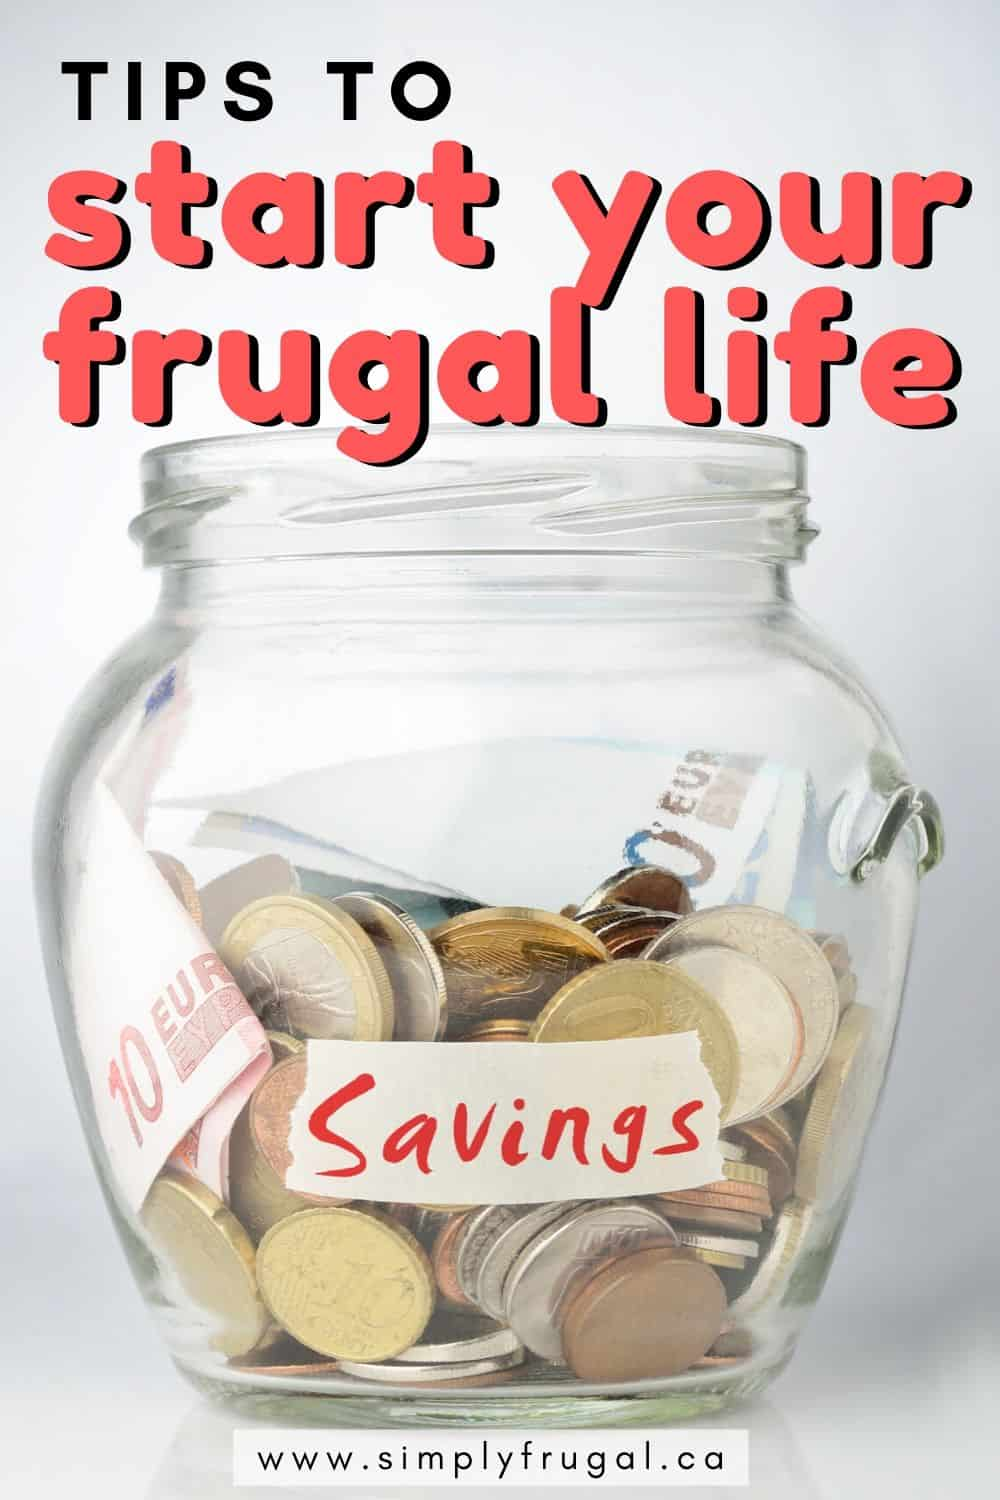 Are you looking to start living frugally? You're not alone. These 5 frugal living tips are perfect for getting your frugal lifestyle started.